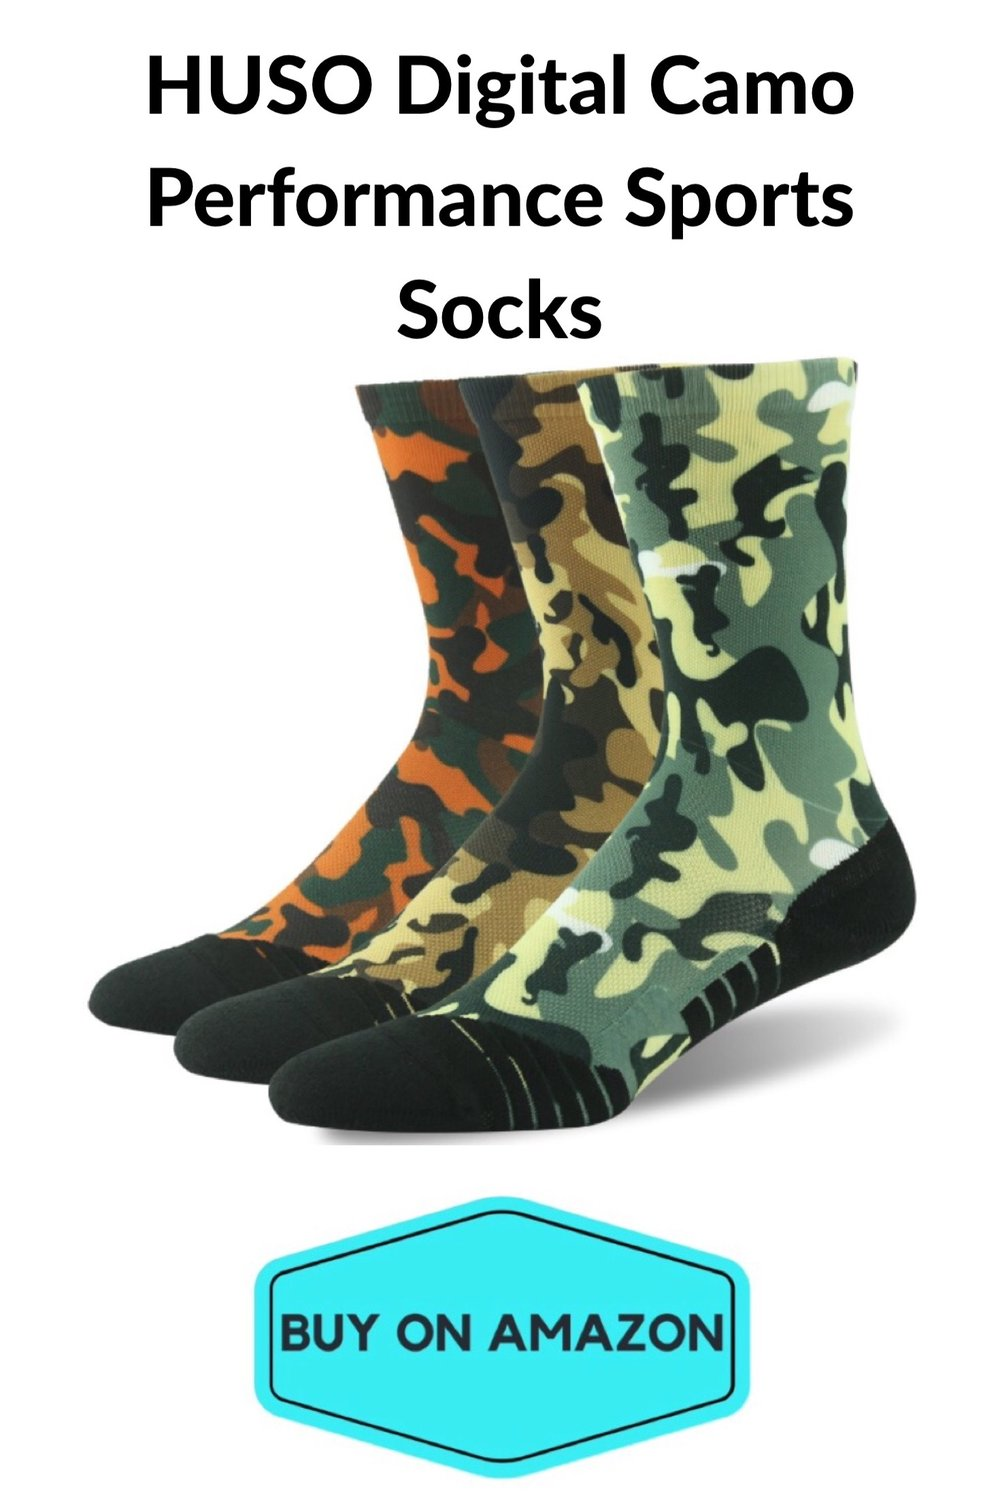 HUSO Digital Camo Sports Socks